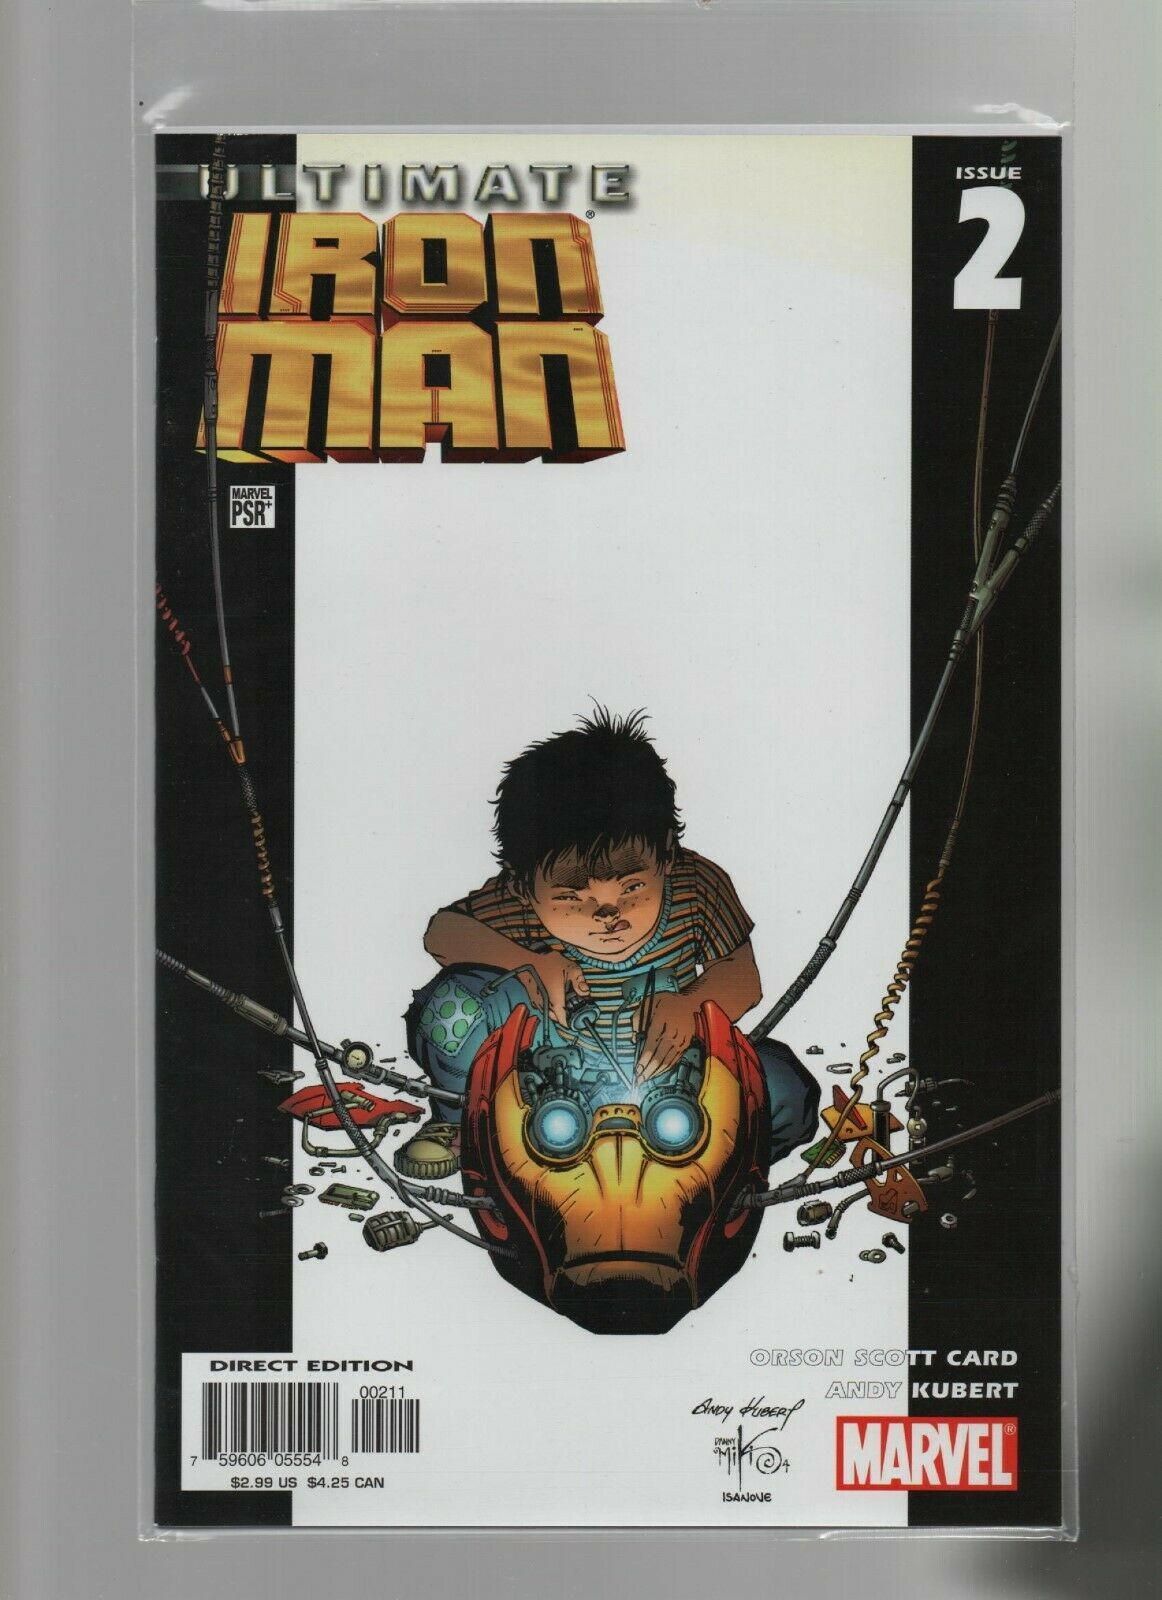 Primary image for Ultimate Iron Man #2 - Marvel Comics - 2005 - Orson Scott Card, Andy Kubert.